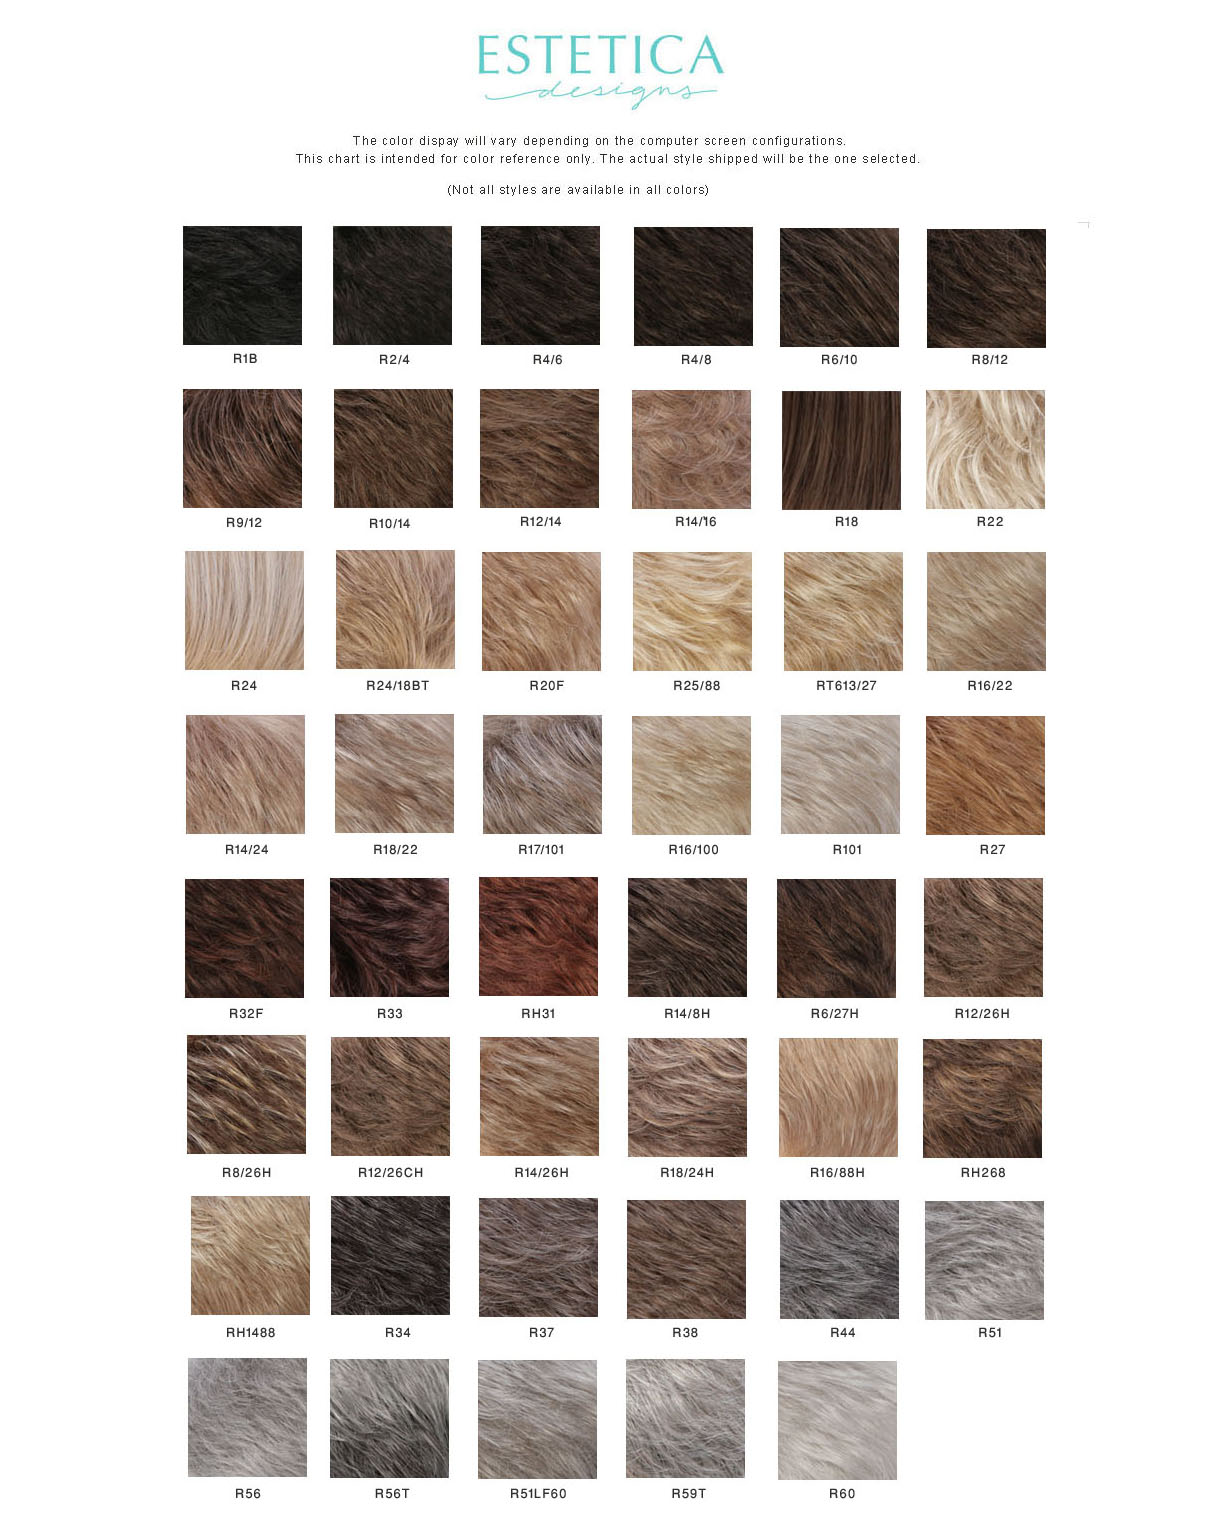 ESTETICA HAIR COLOR CHART